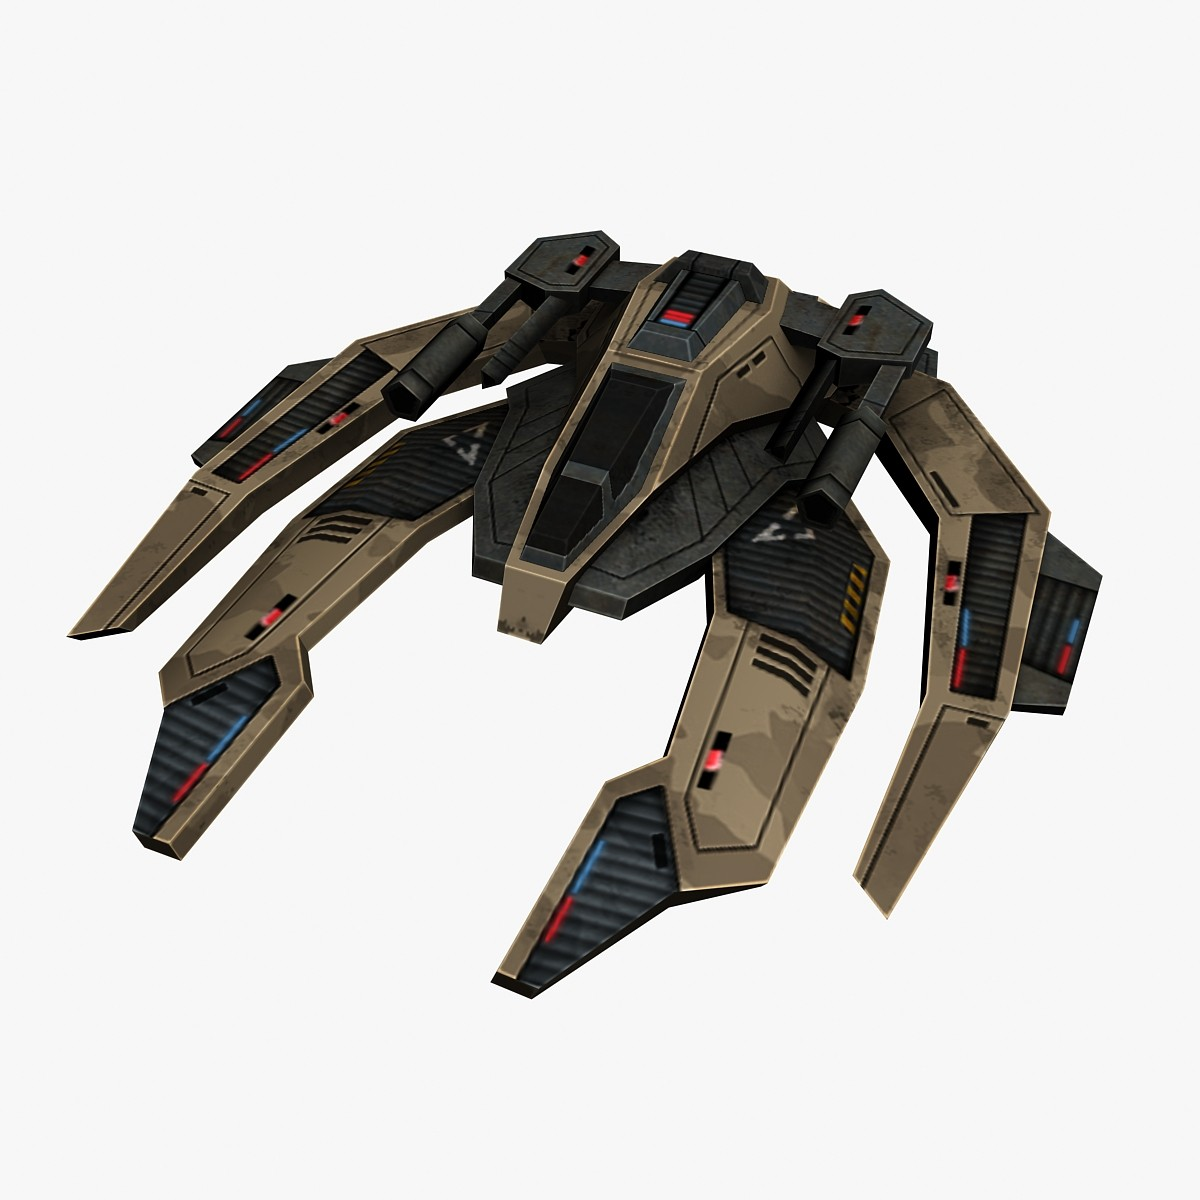 military_space_fighter_3_preview_0.jpg